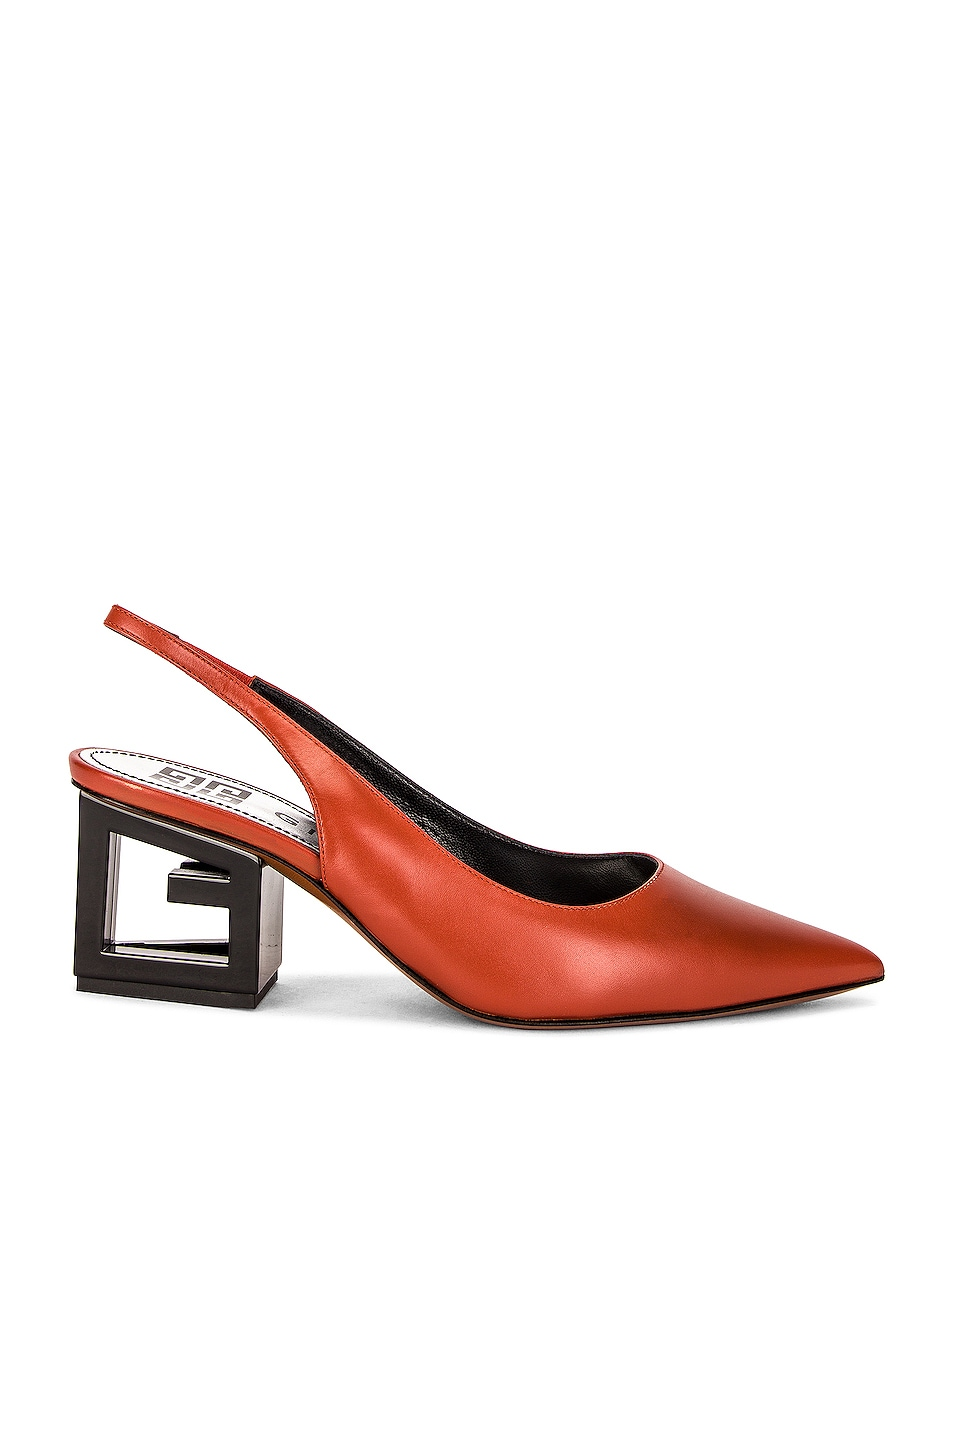 Image 1 of Givenchy Triangle Slingback Pumps in Terracotta